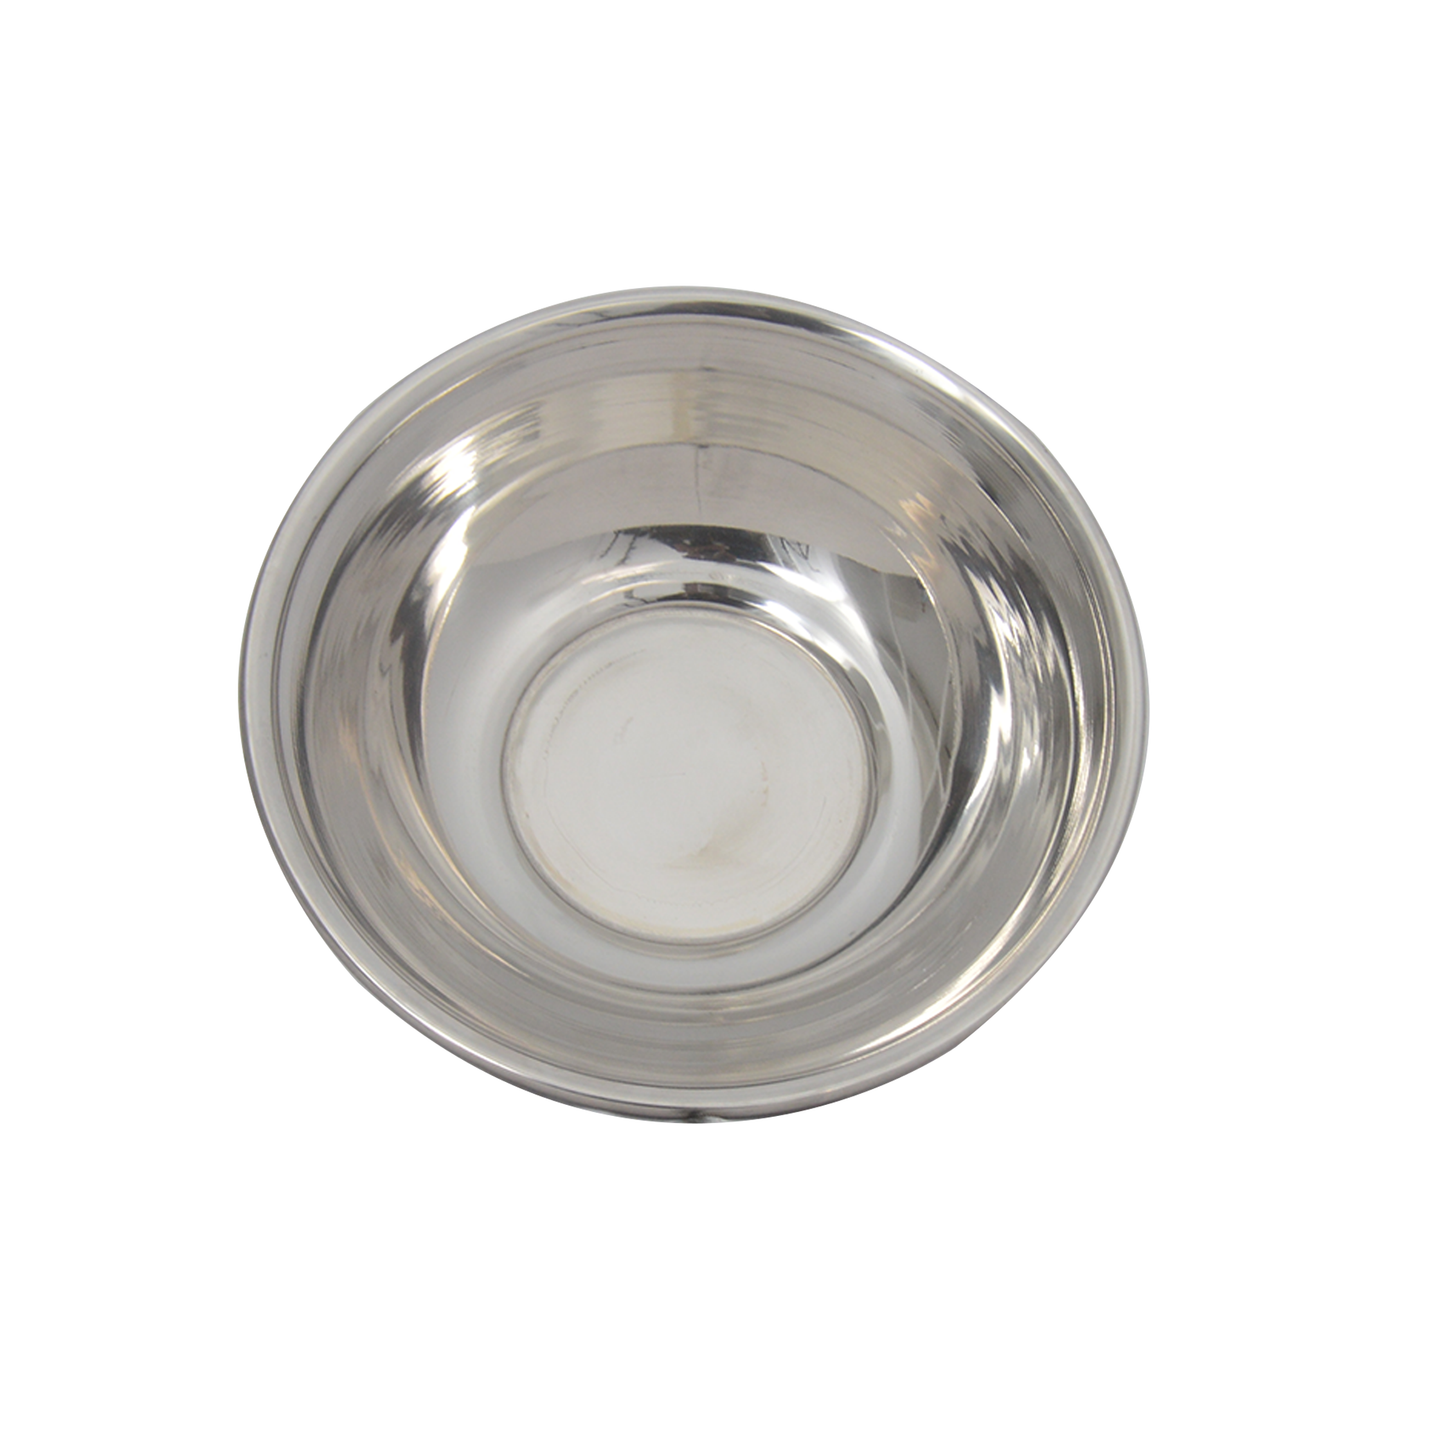 Bowl Basin Steel 20G No. 10